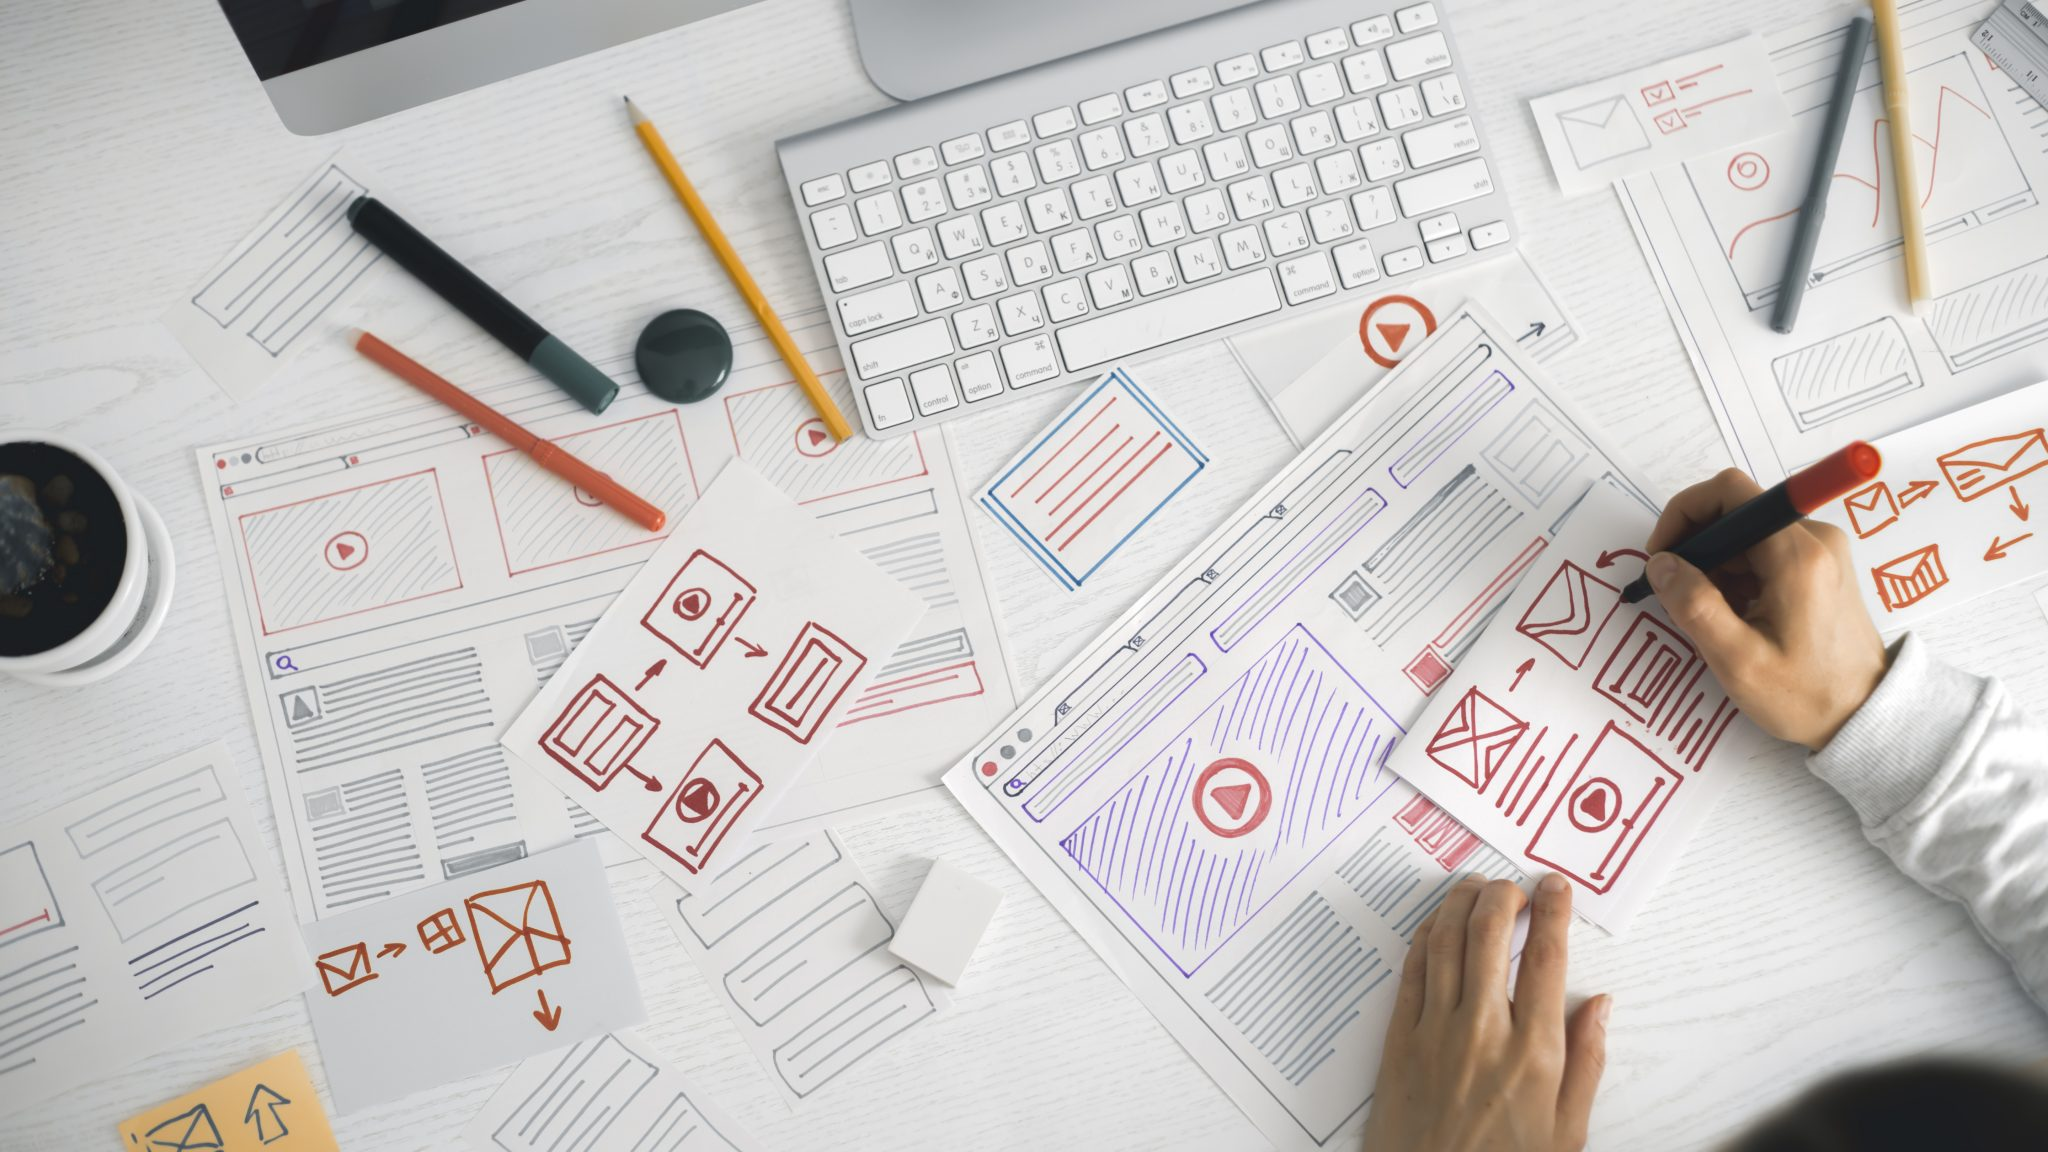 5 reasons why you should update your website